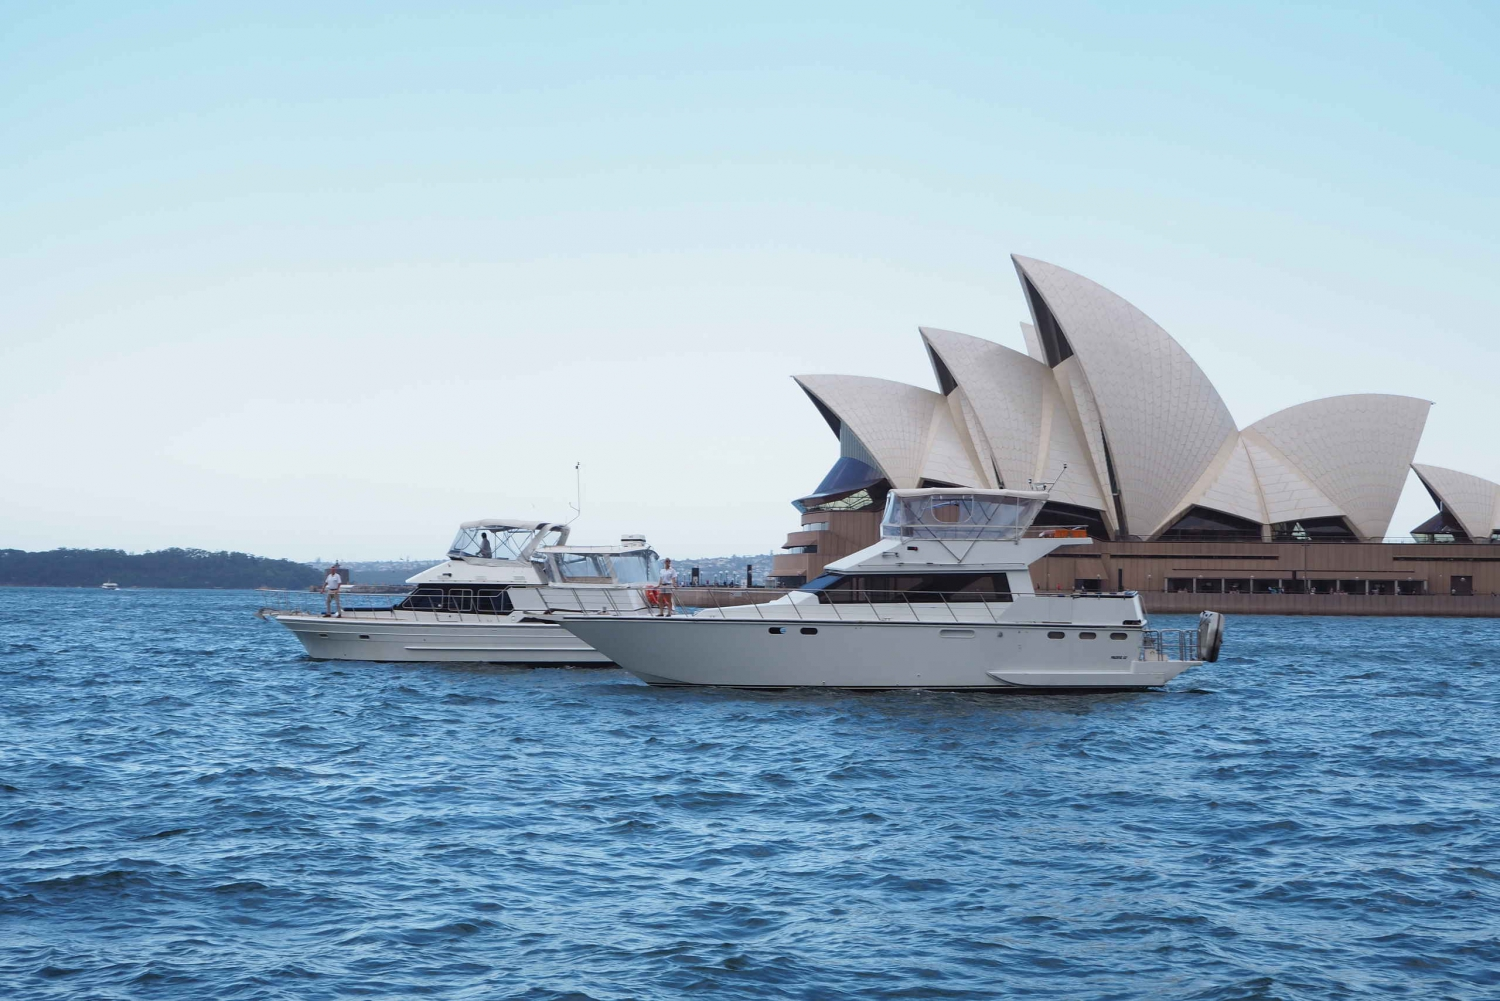 Sydney Harbour: 2-Hour Morning Yacht Cruise with Morning Tea